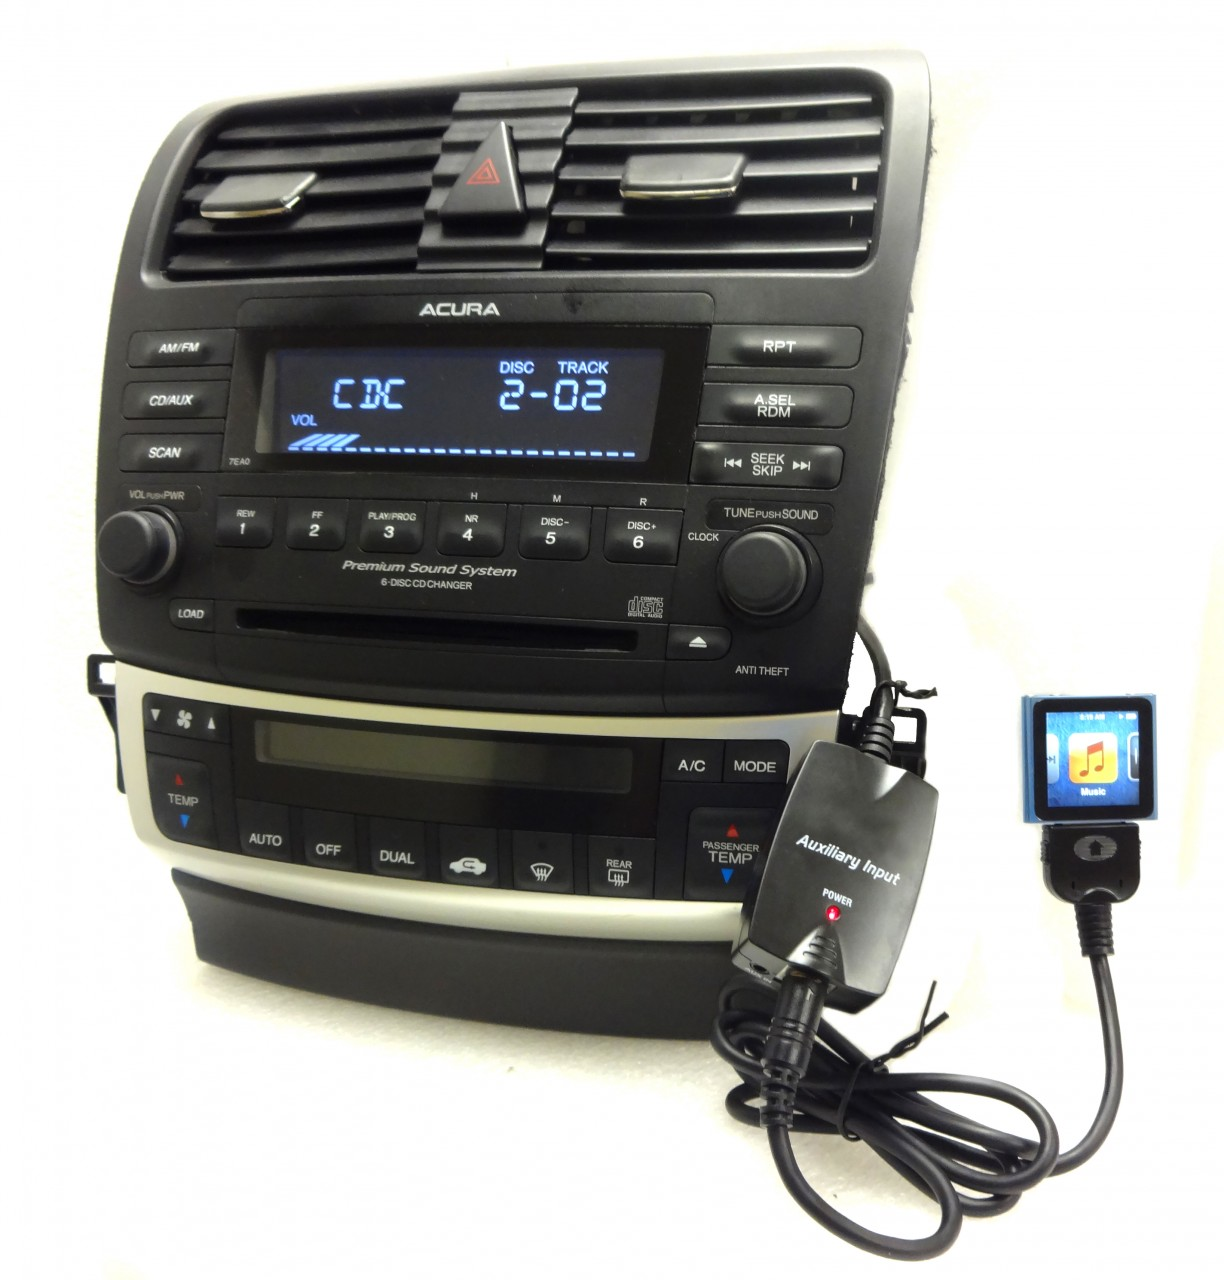 NEW HONDA Accord ACURA IPod IPhone Adapter AUX Auxiliary For Radio - 2004 acura tl aux input